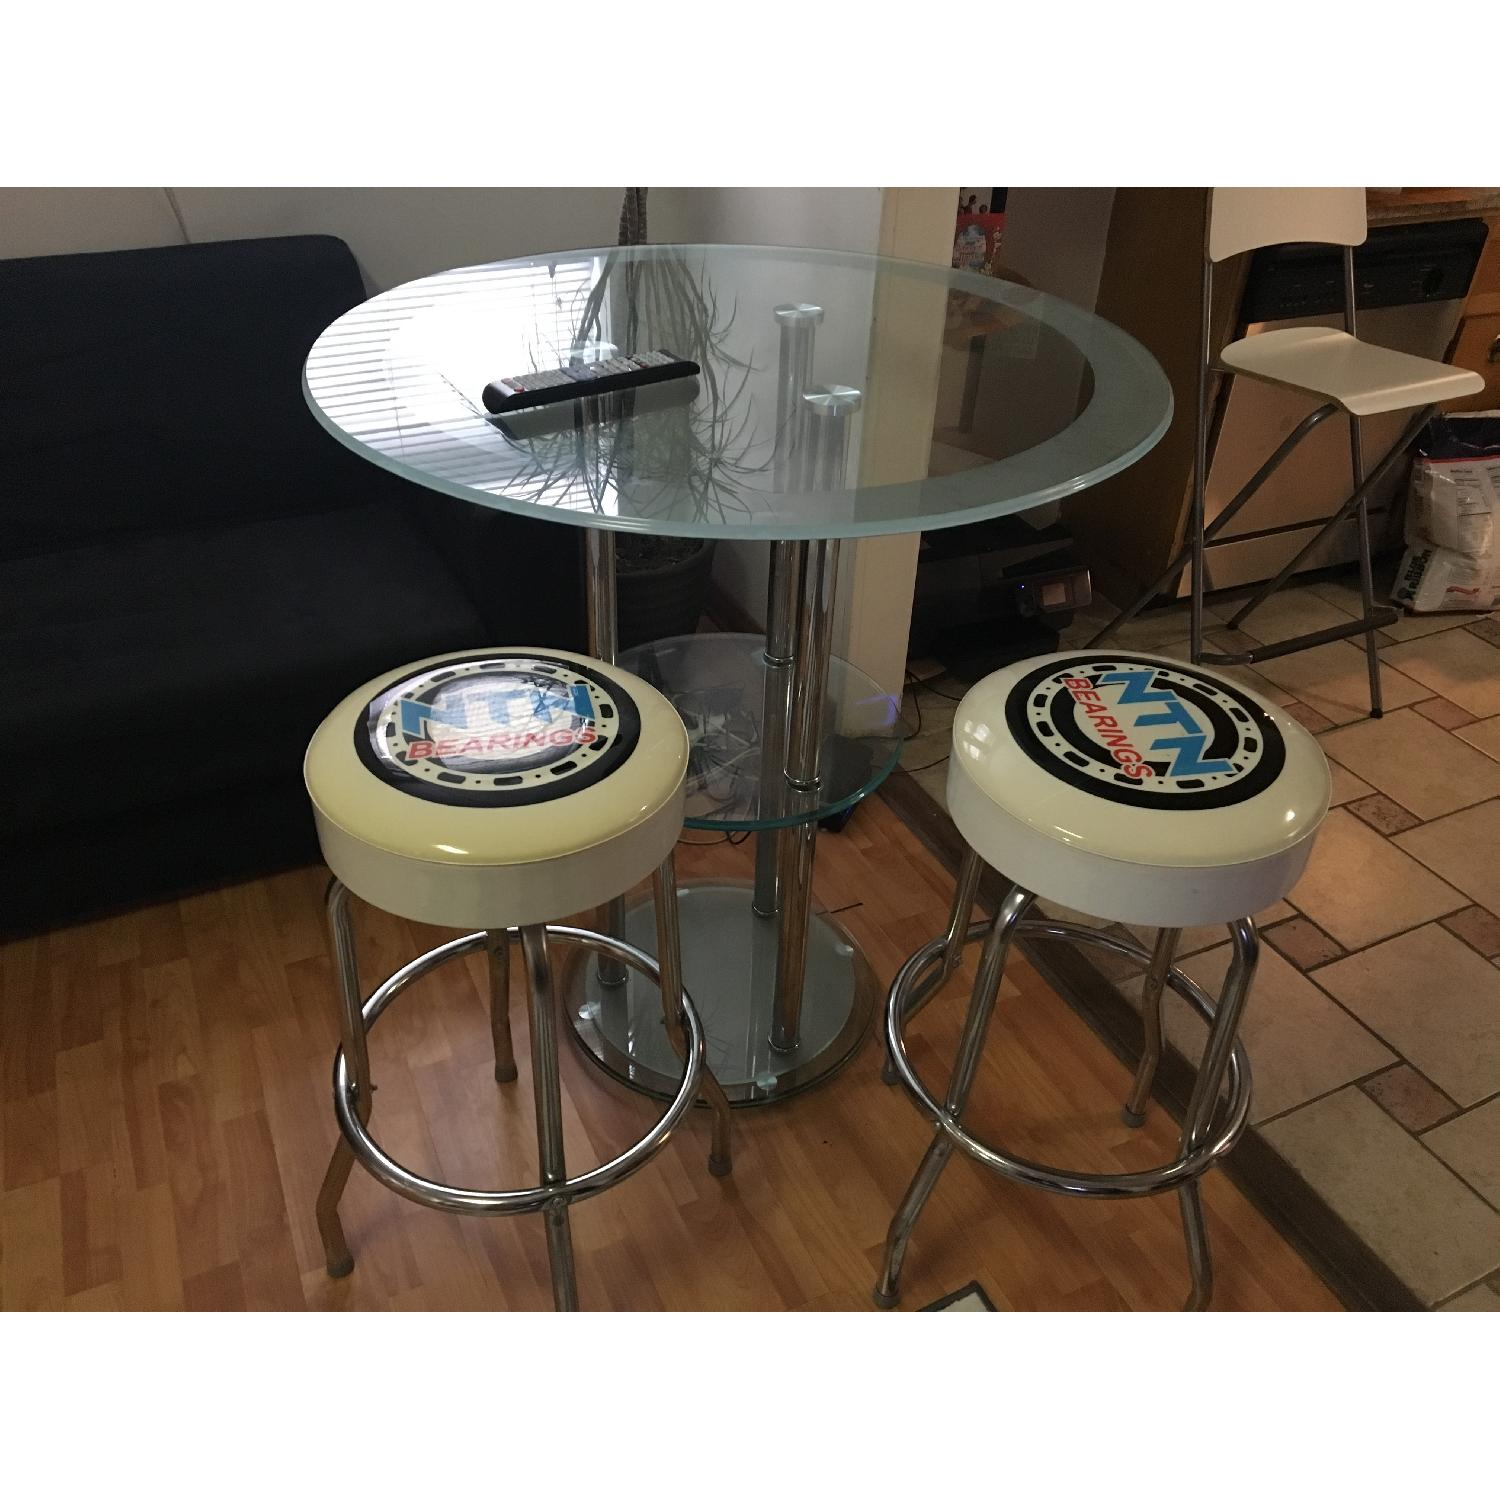 Bar Table w/ 2 Chairs - image-2